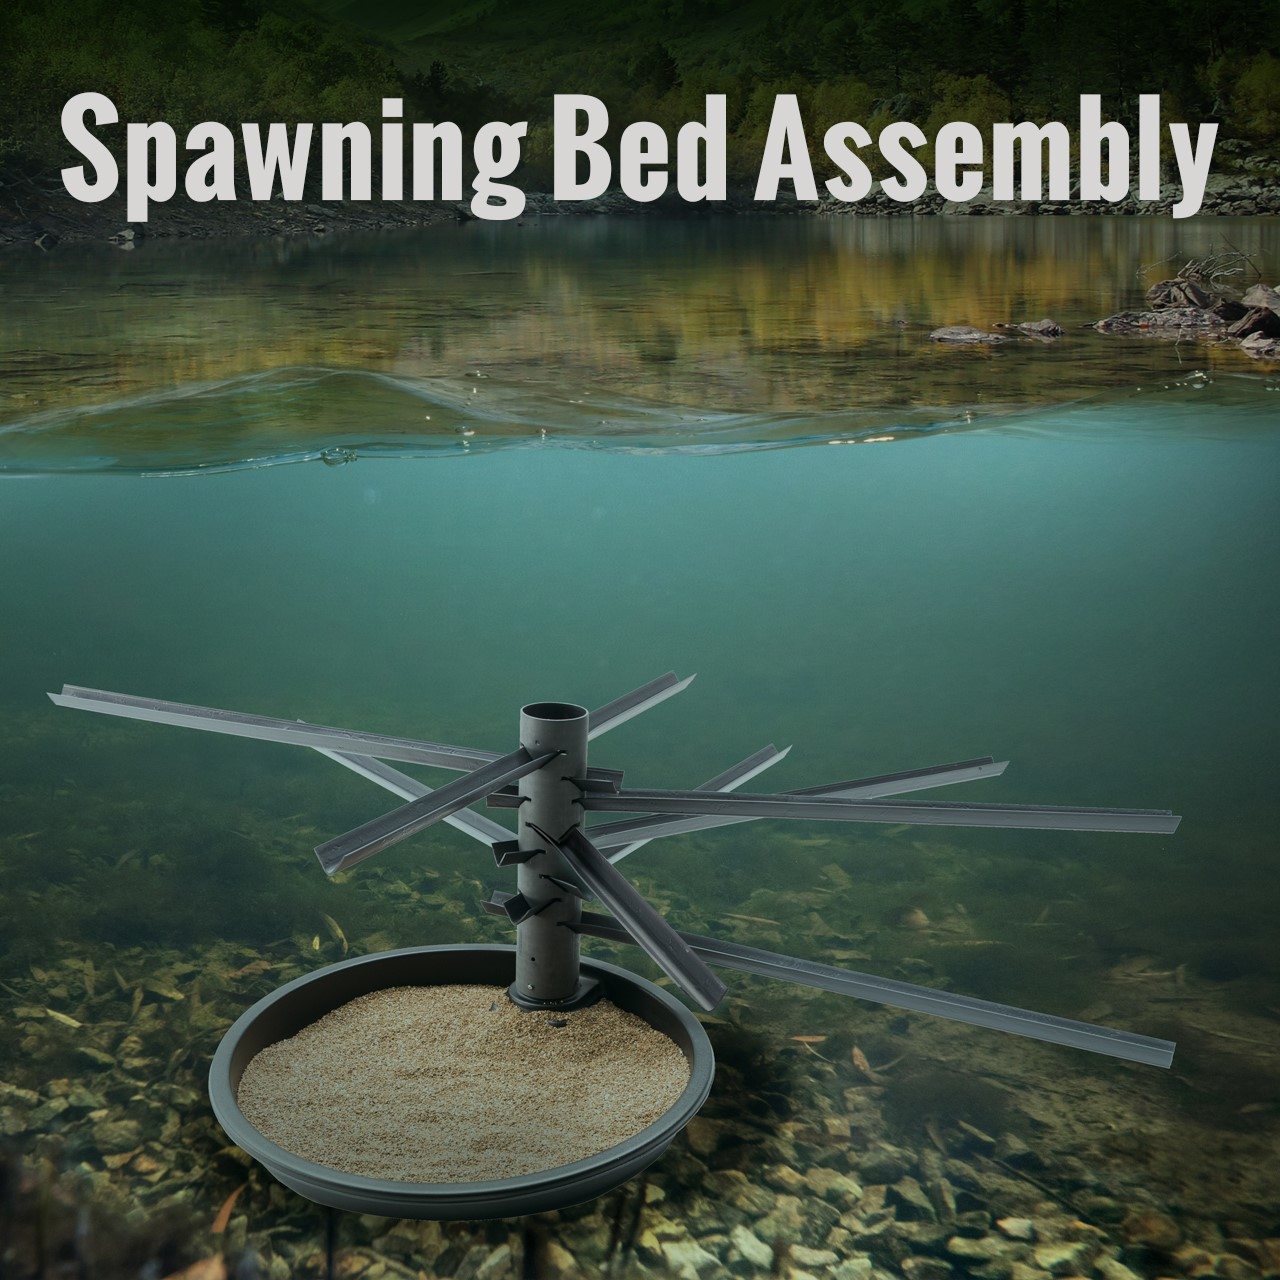 Spawning Bed Assembly